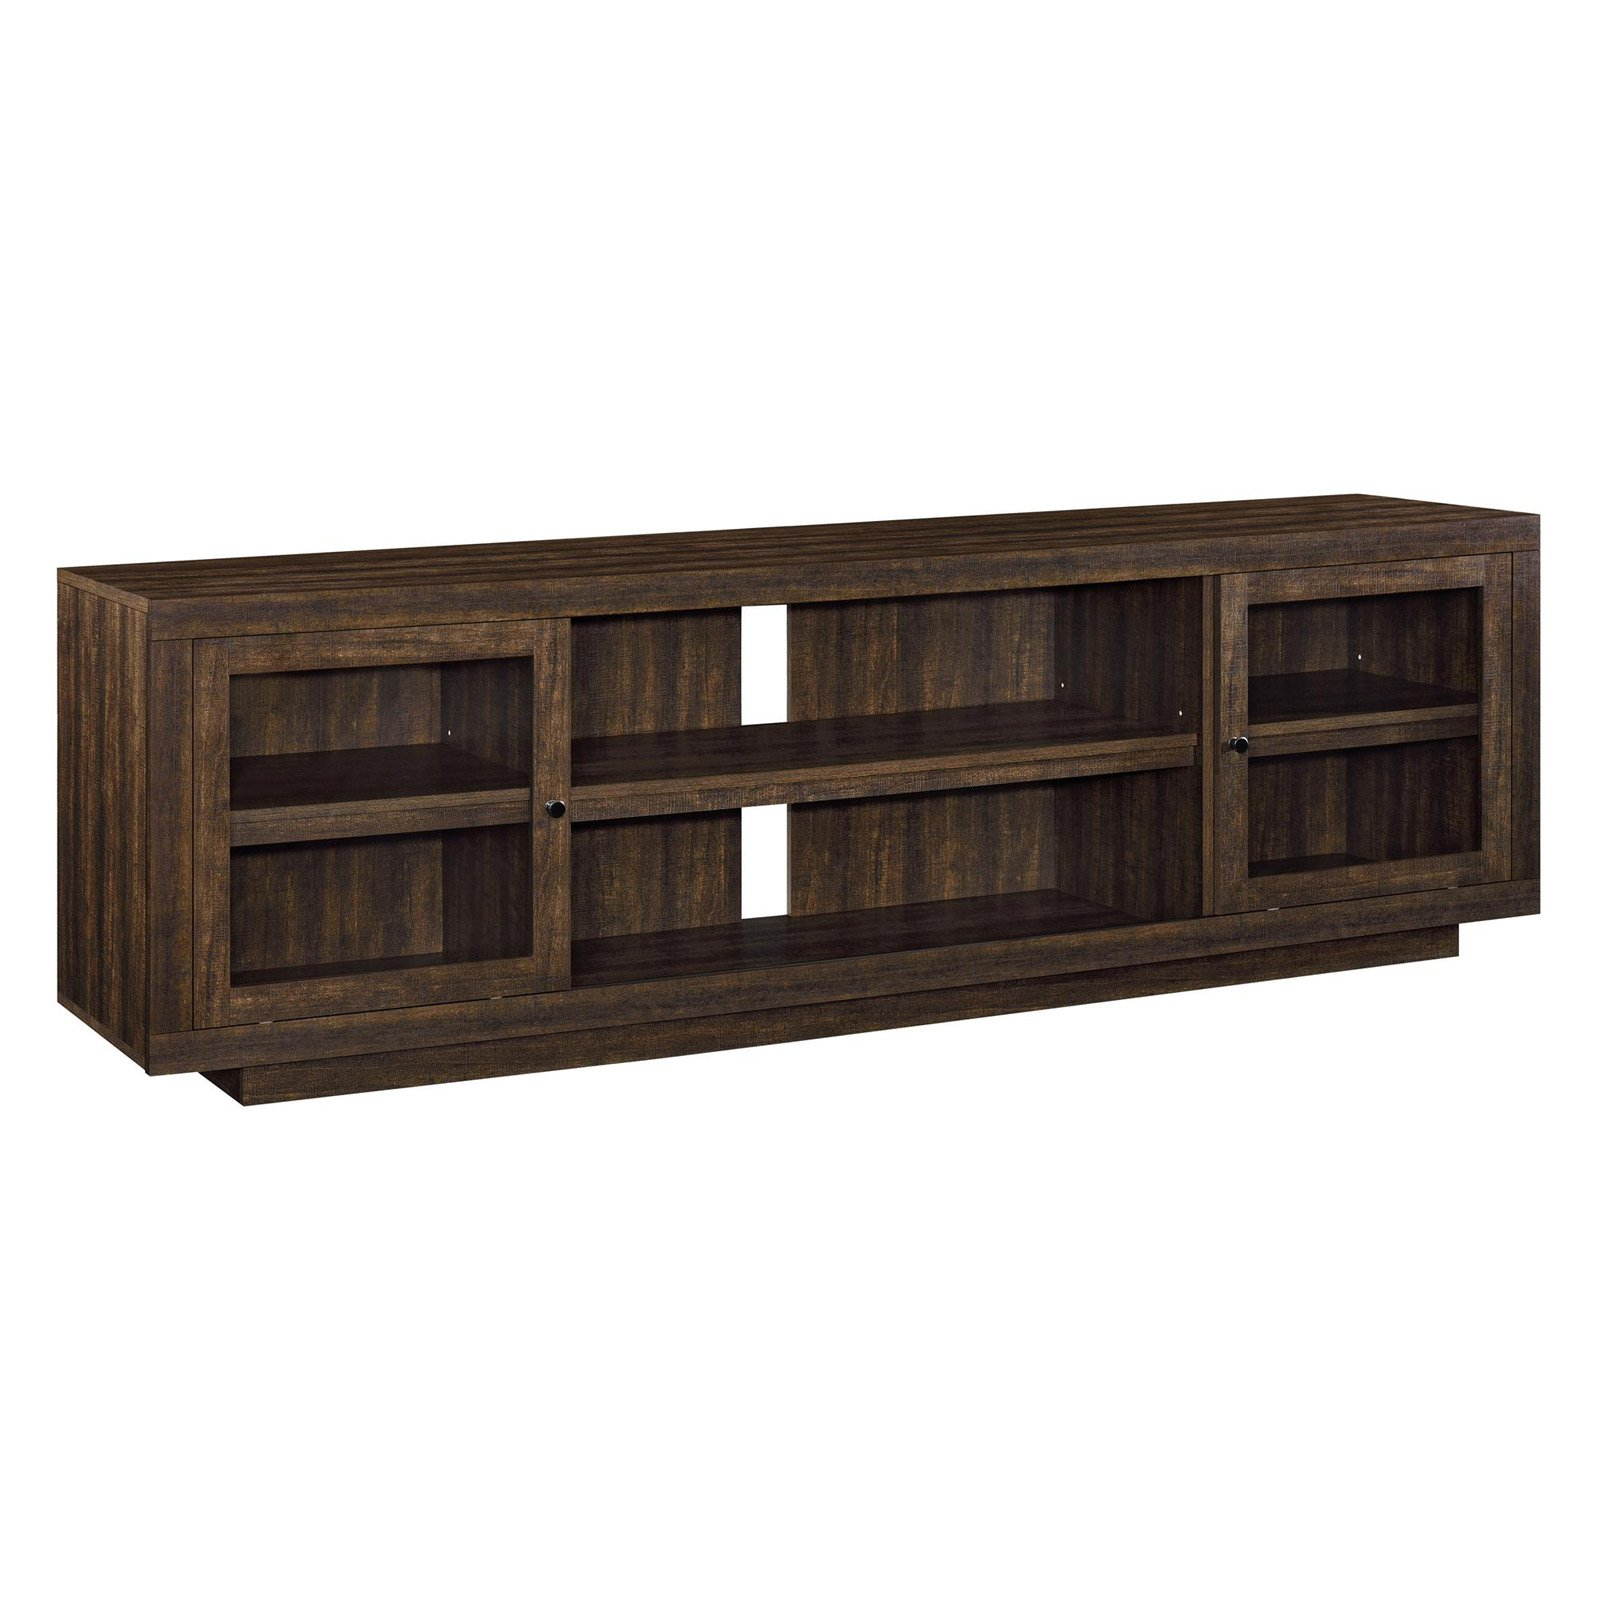 "Altra Bailey 72"" Espresso TV Stand for TV's up to 72"" by Ameriwood"